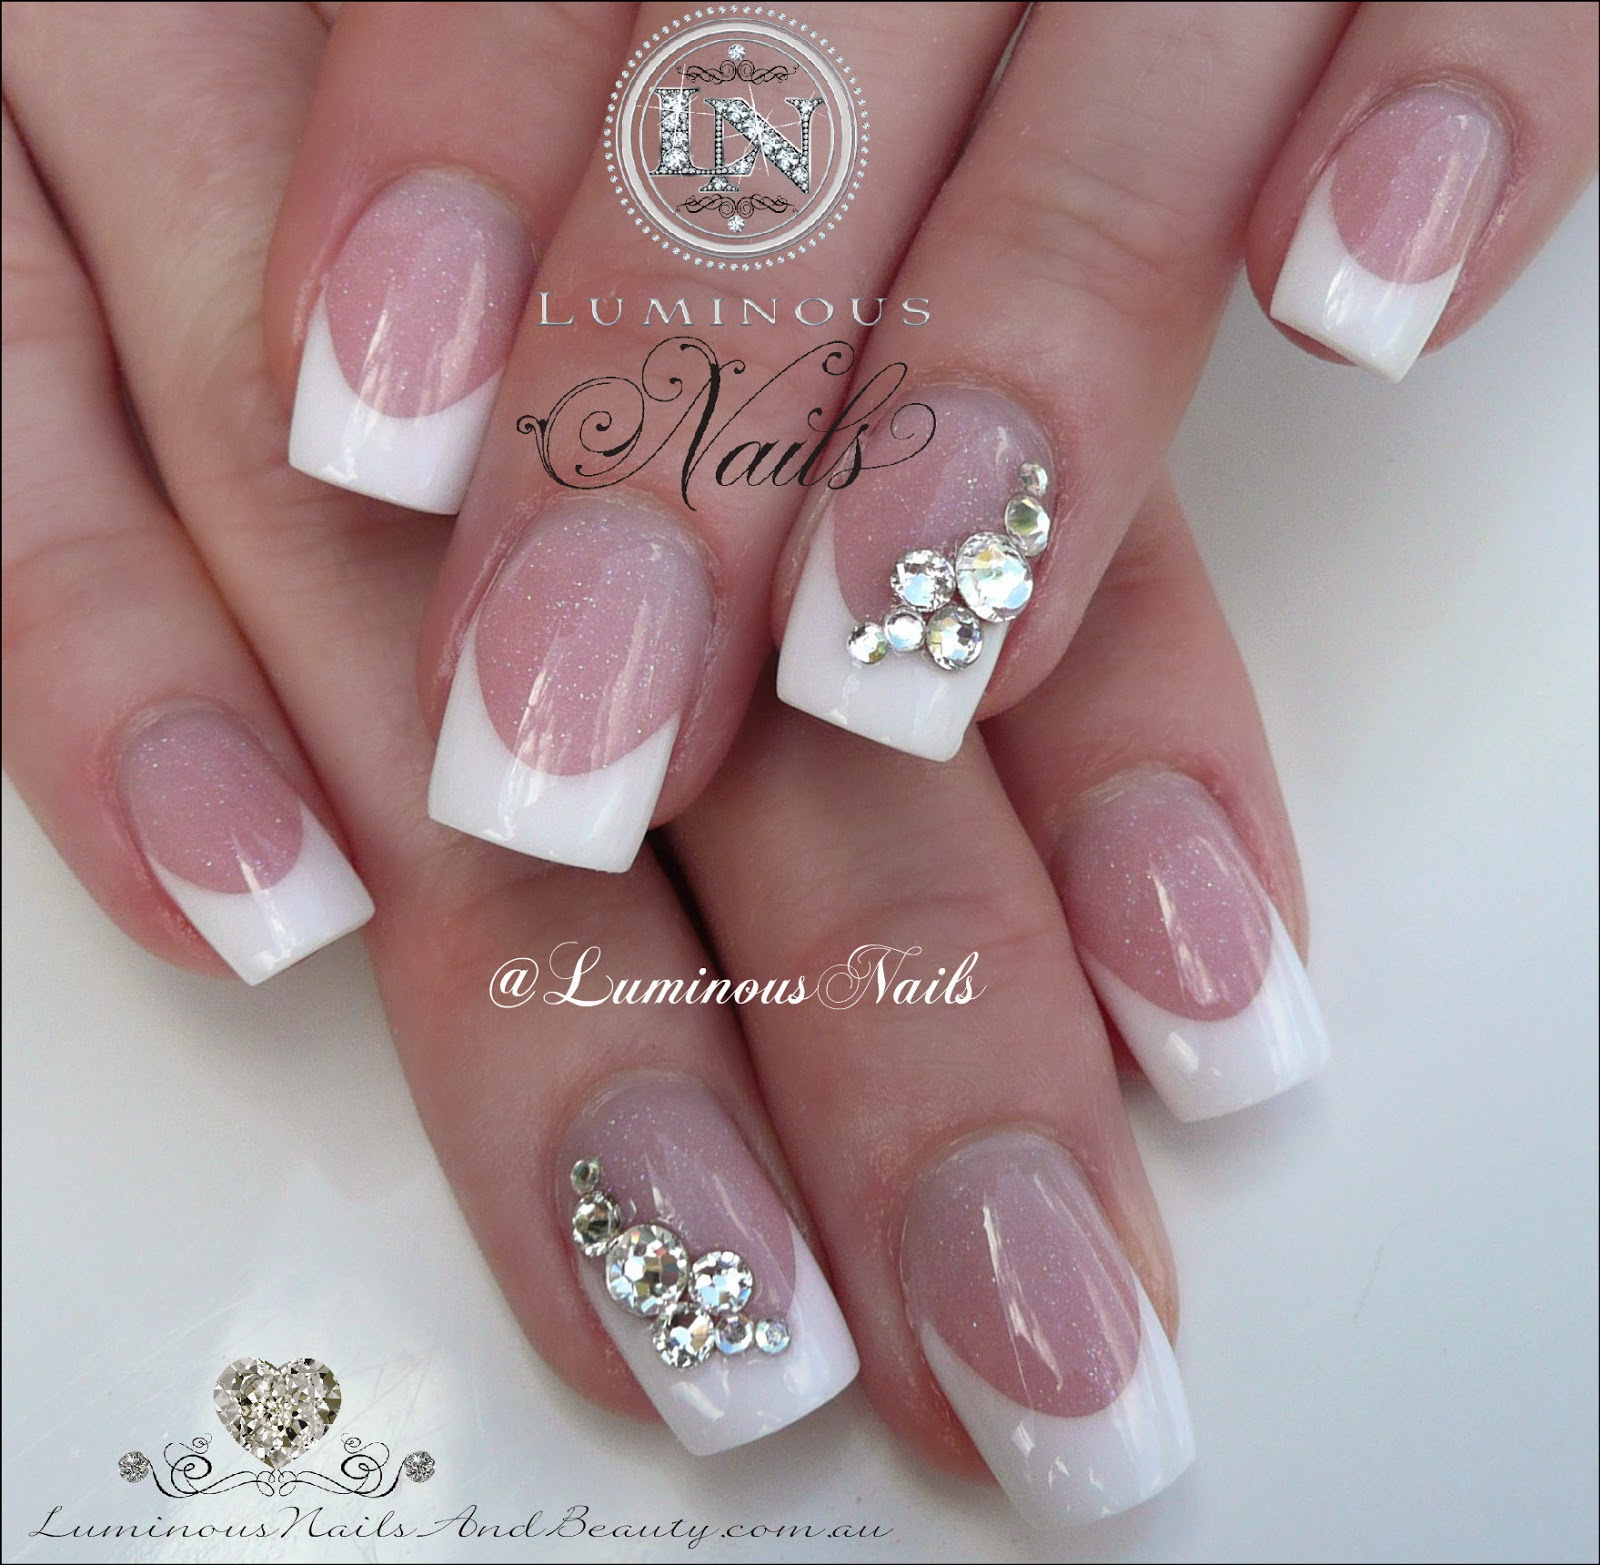 Luminous Nails Clic French Wedding With Swarovski Crystals